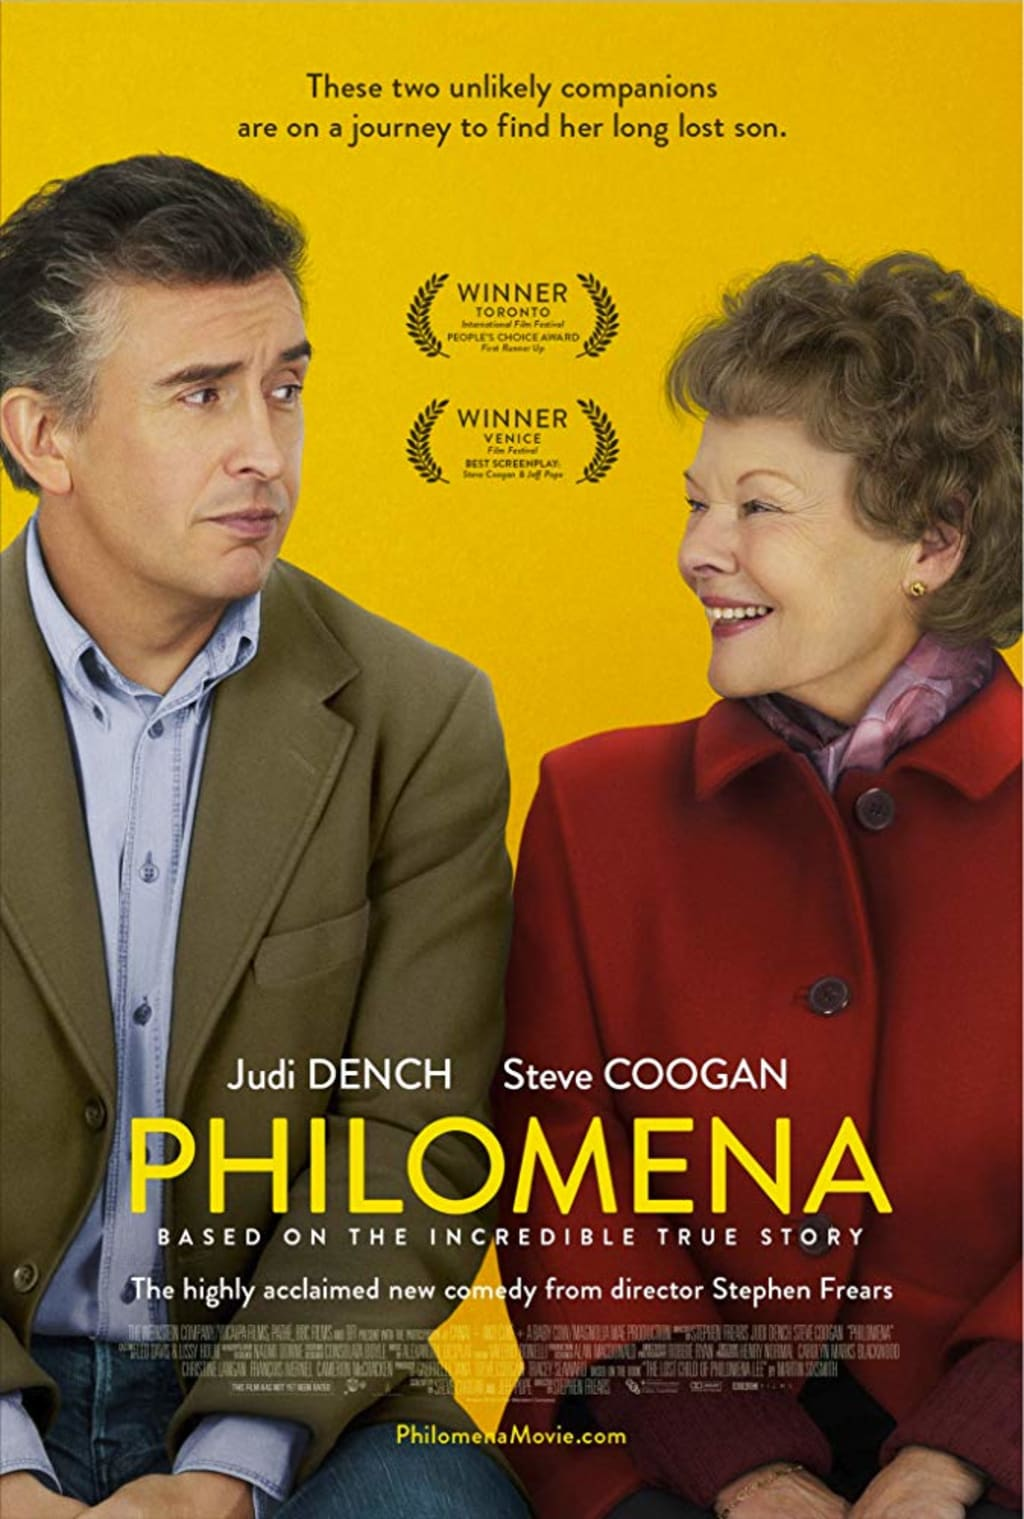 'Philomena' Shows the Way for a Catholic Church that has Long Lost its Way